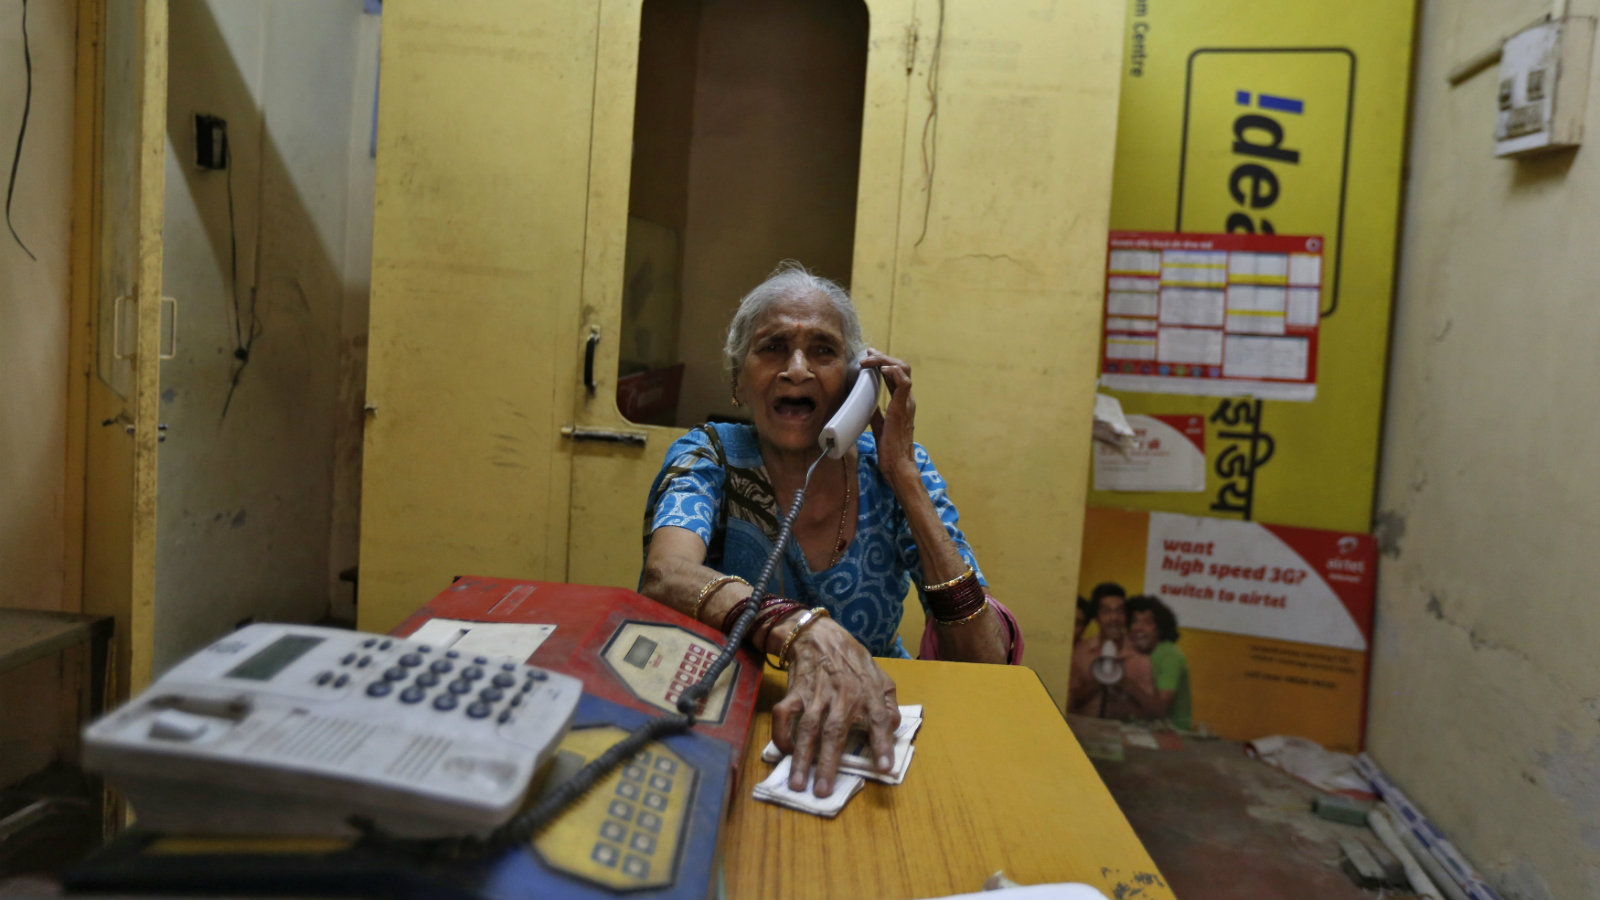 Shradeshshari Devi, 74, speaks on a phone at a local telephone booth in the old quarters of Delhi October 18, 2013.